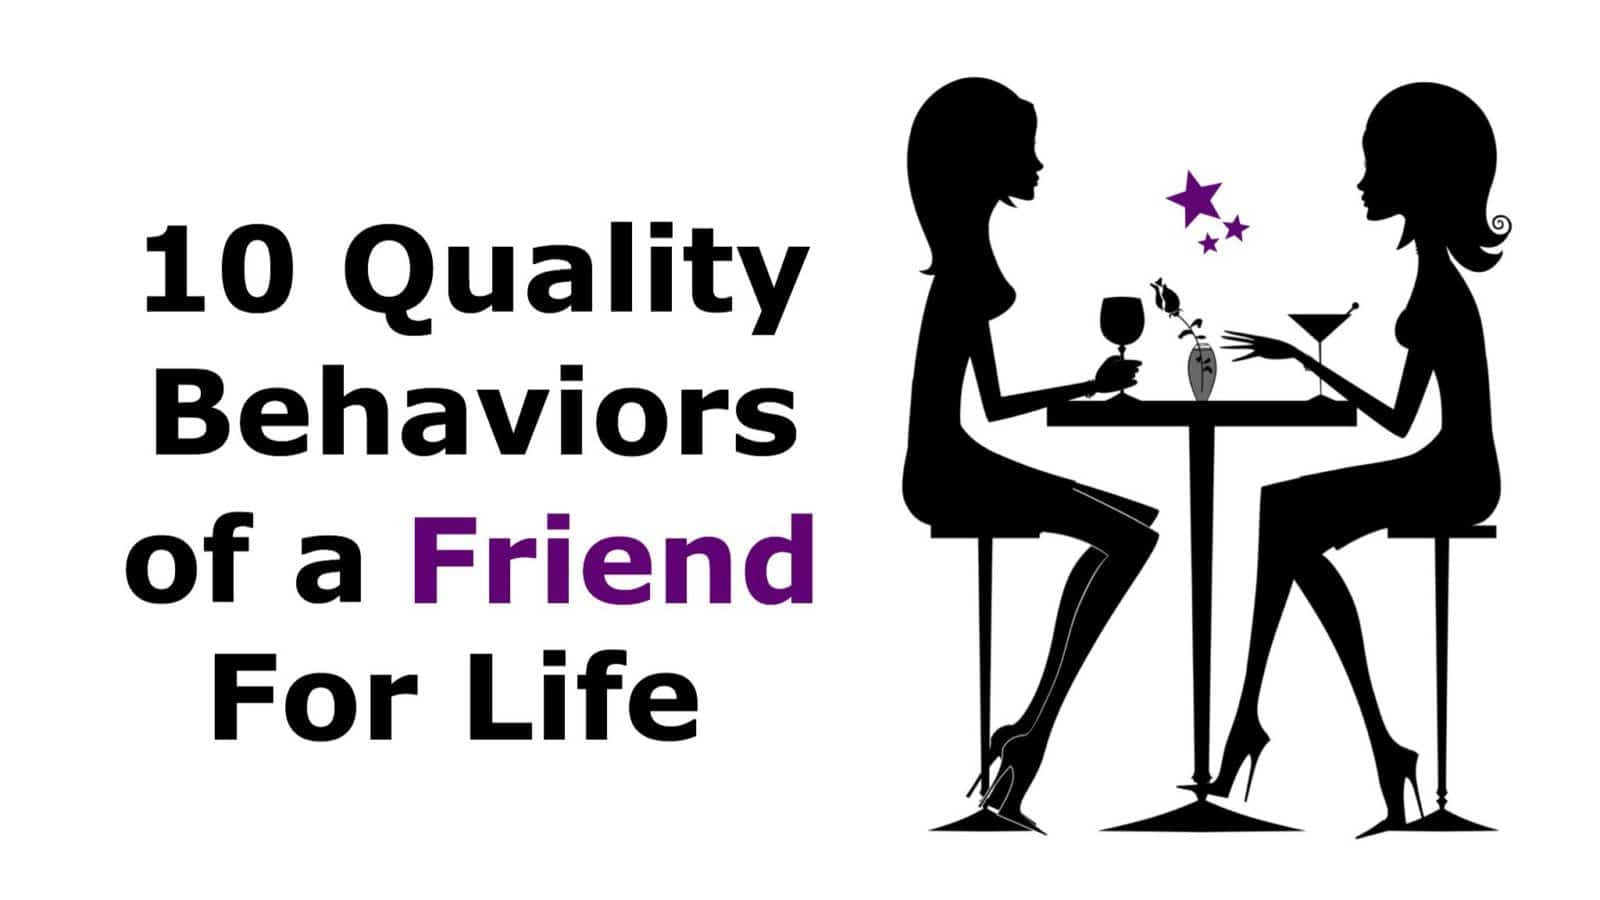 10 Quality Behaviors of A Friend For Life